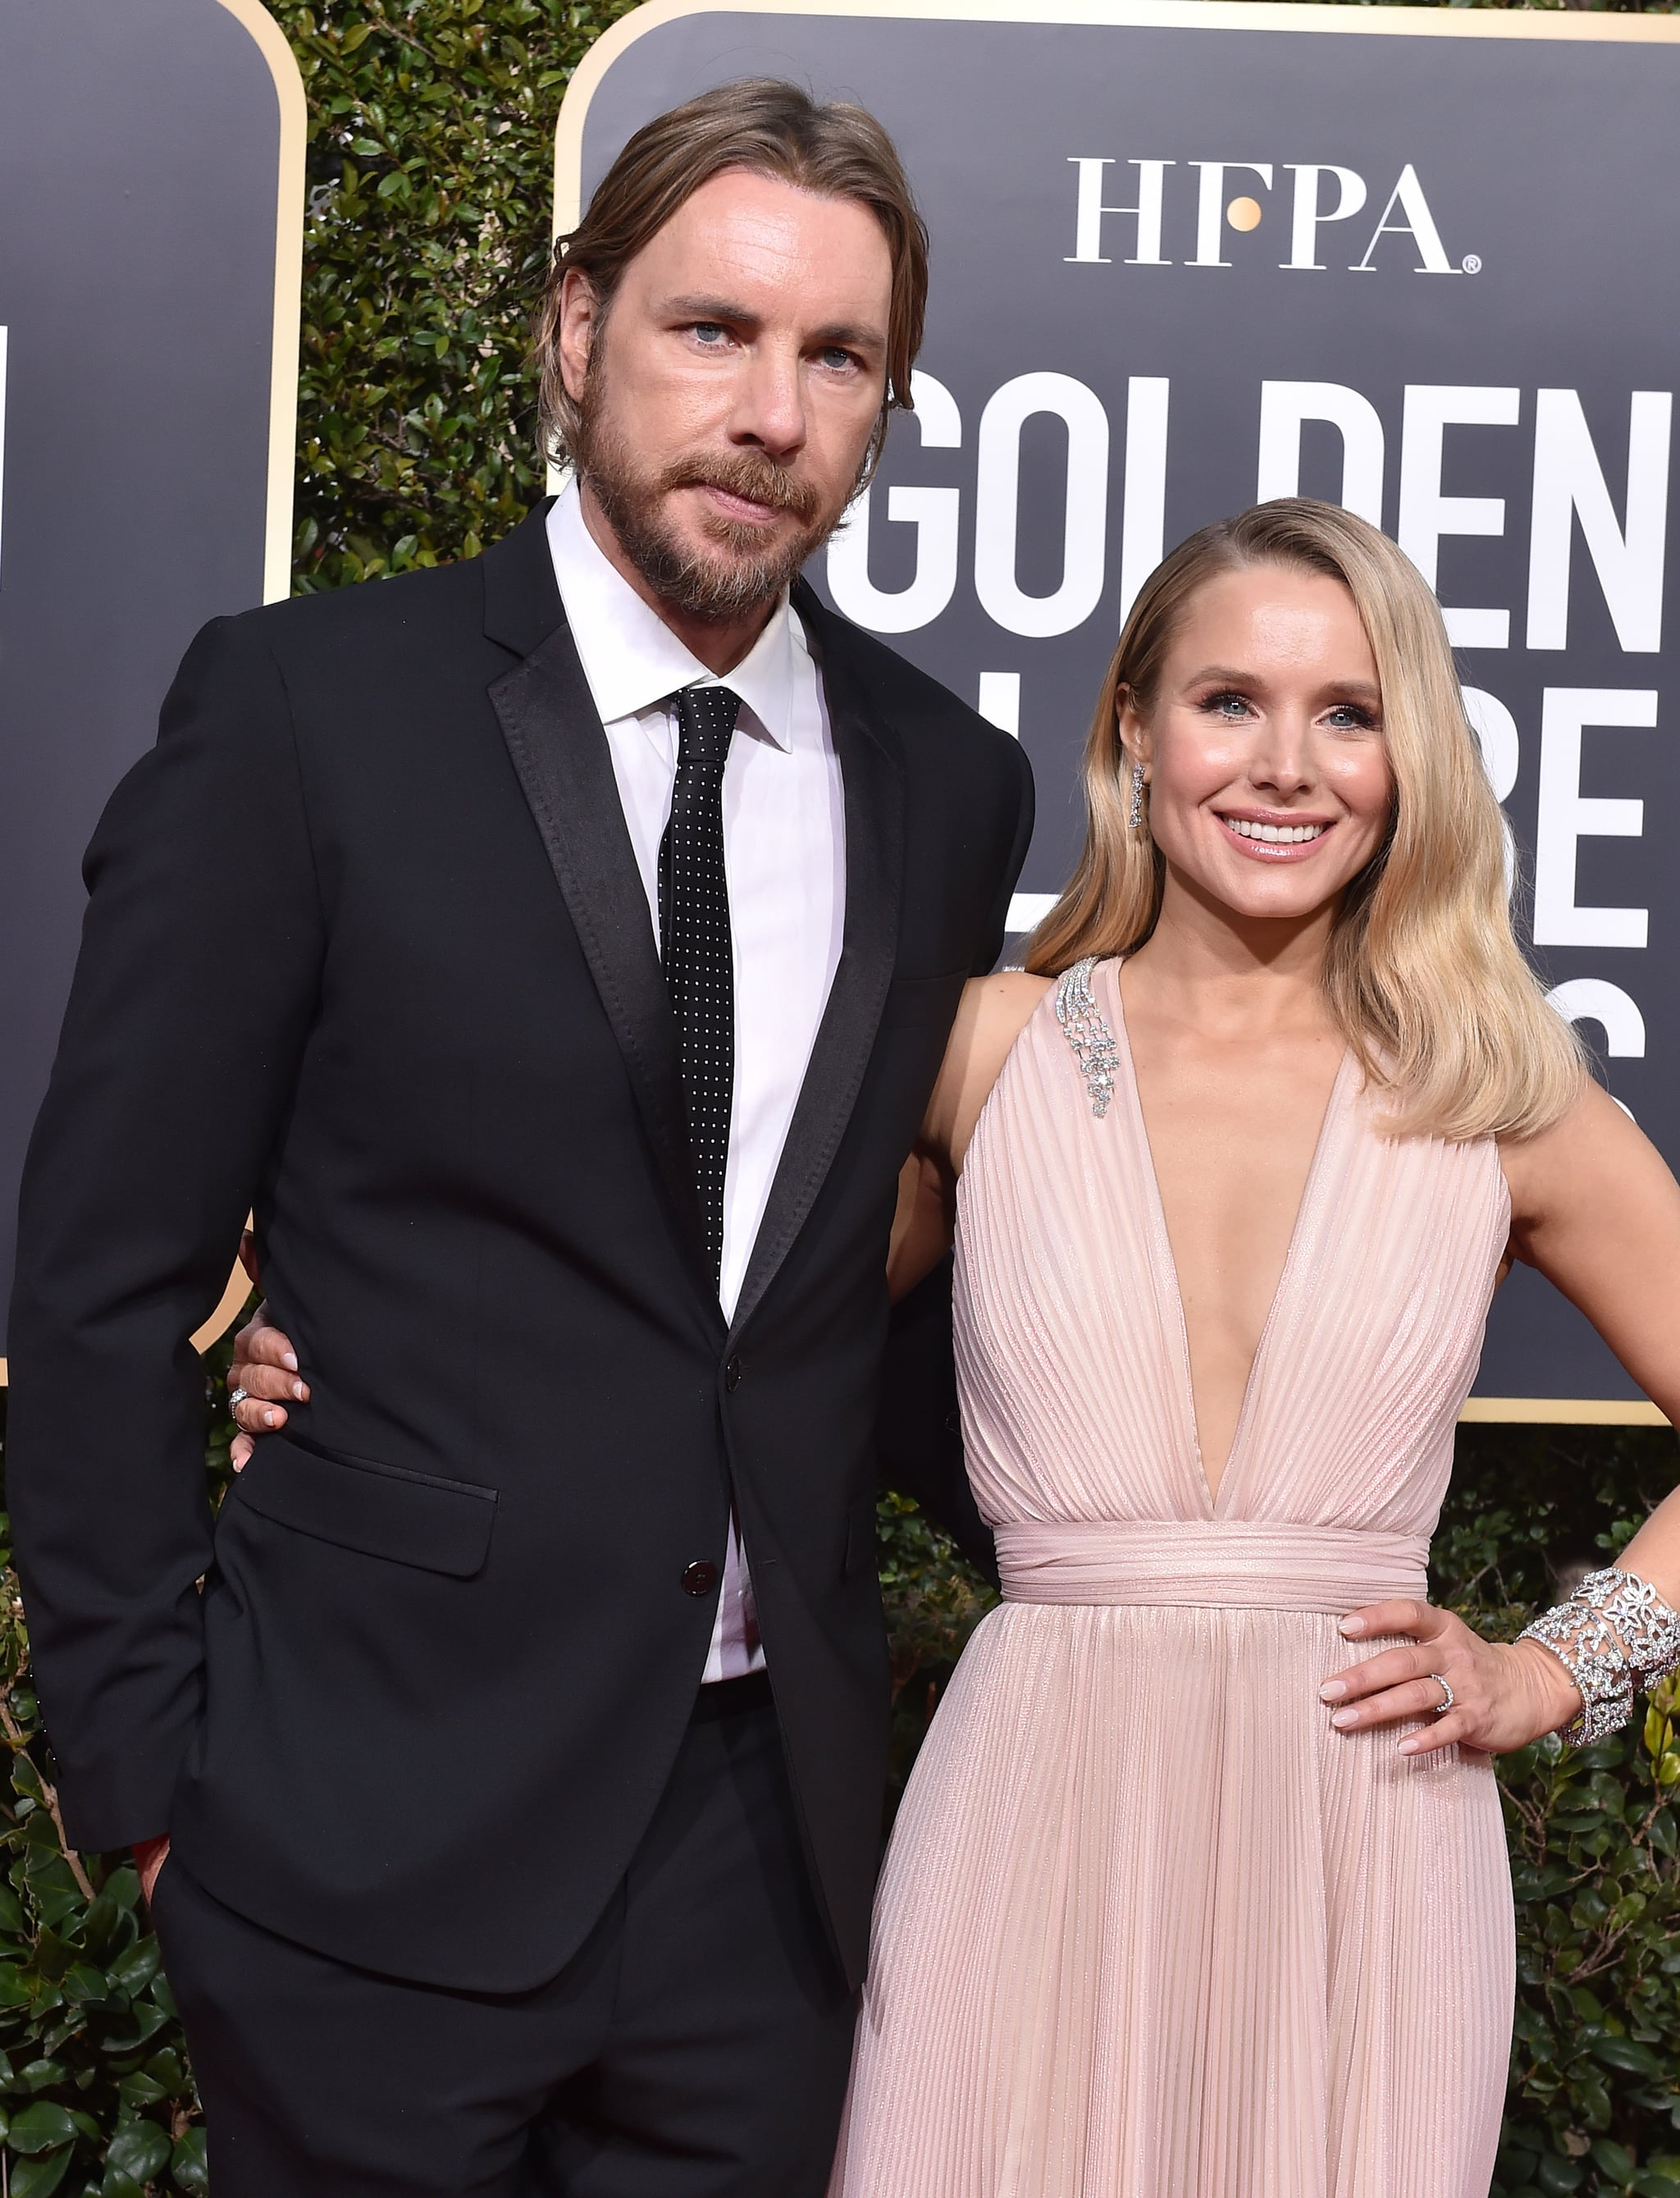 BEVERLY HILLS, CA - JANUARY 06:  Dax Shepard and Kristen Bell attend the 76th Annual Golden Globe Awards at The Beverly Hilton Hotel on January 6, 2019 in Beverly Hills, California.  (Photo by Axelle/Bauer-Griffin/FilmMagic)